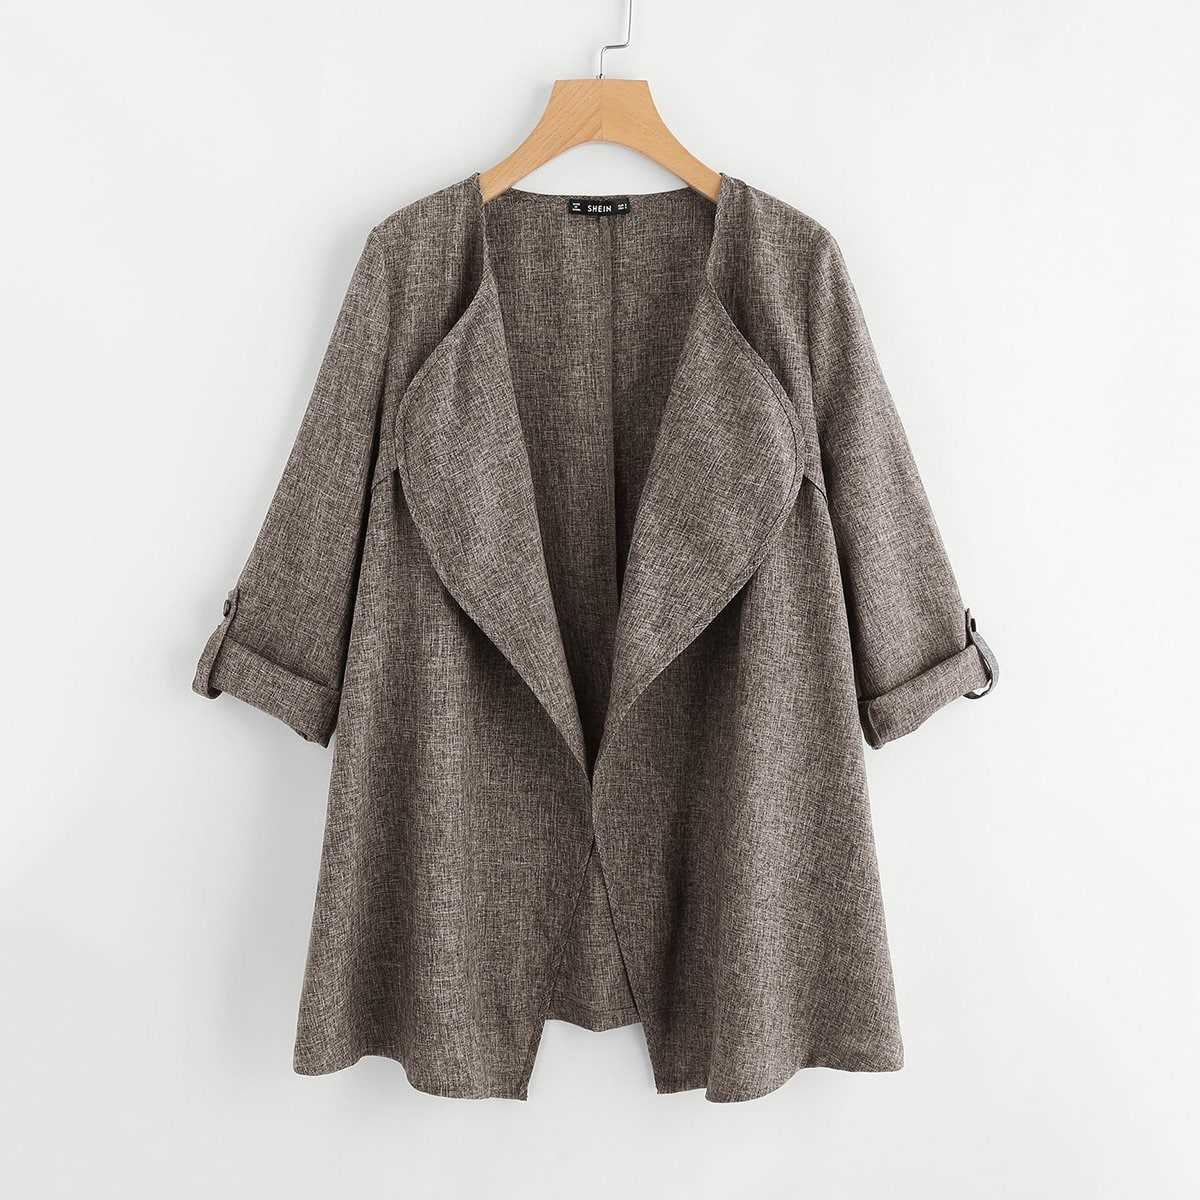 Rolled Up Cuff Drape Collar Marled Coat in Grey by ROMWE on GOOFASH